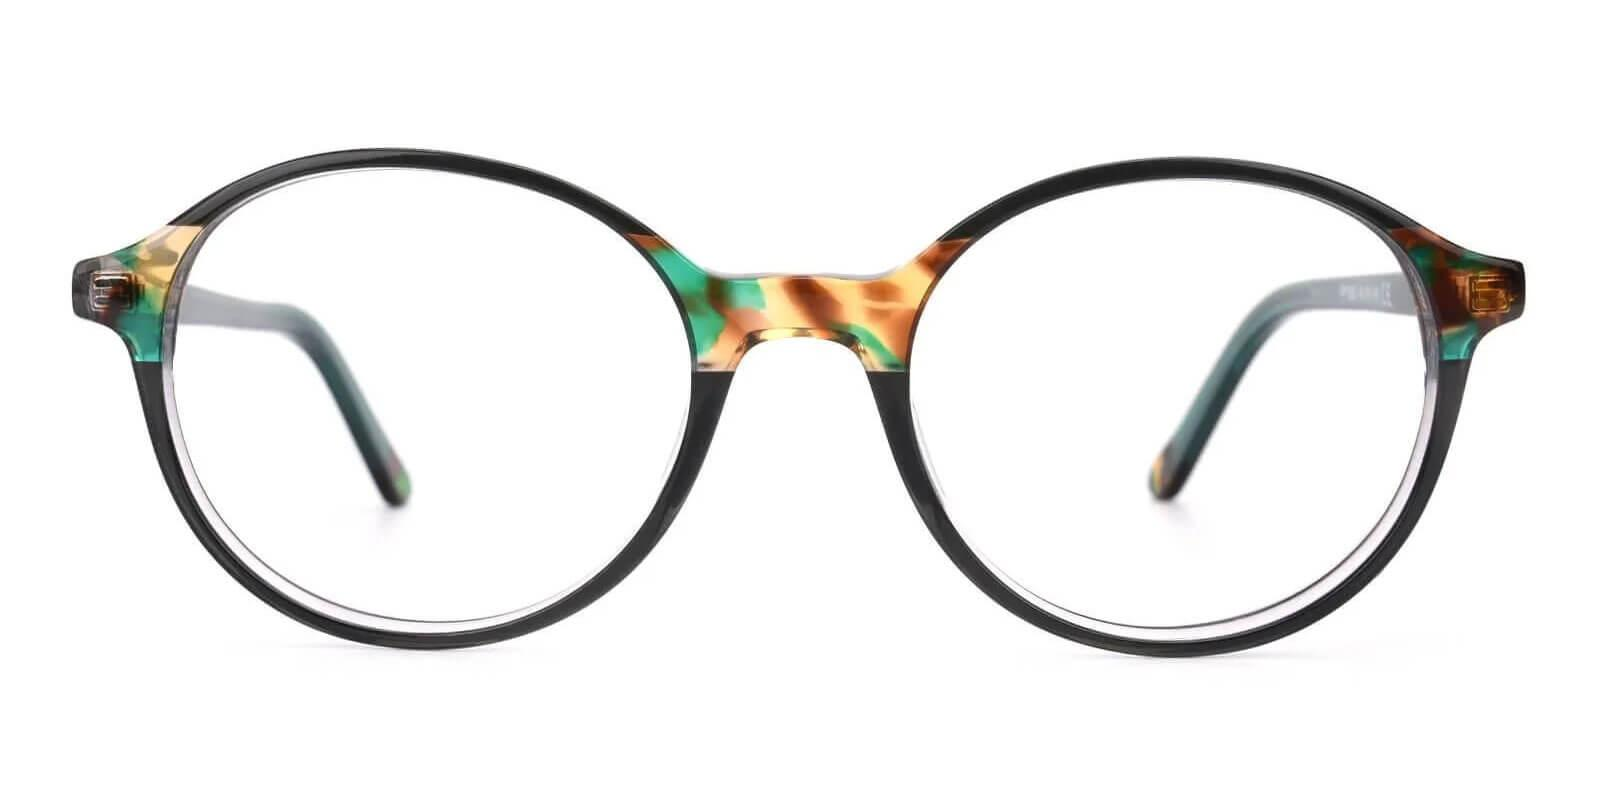 Vienna Green Acetate Eyeglasses , UniversalBridgeFit Frames from ABBE Glasses